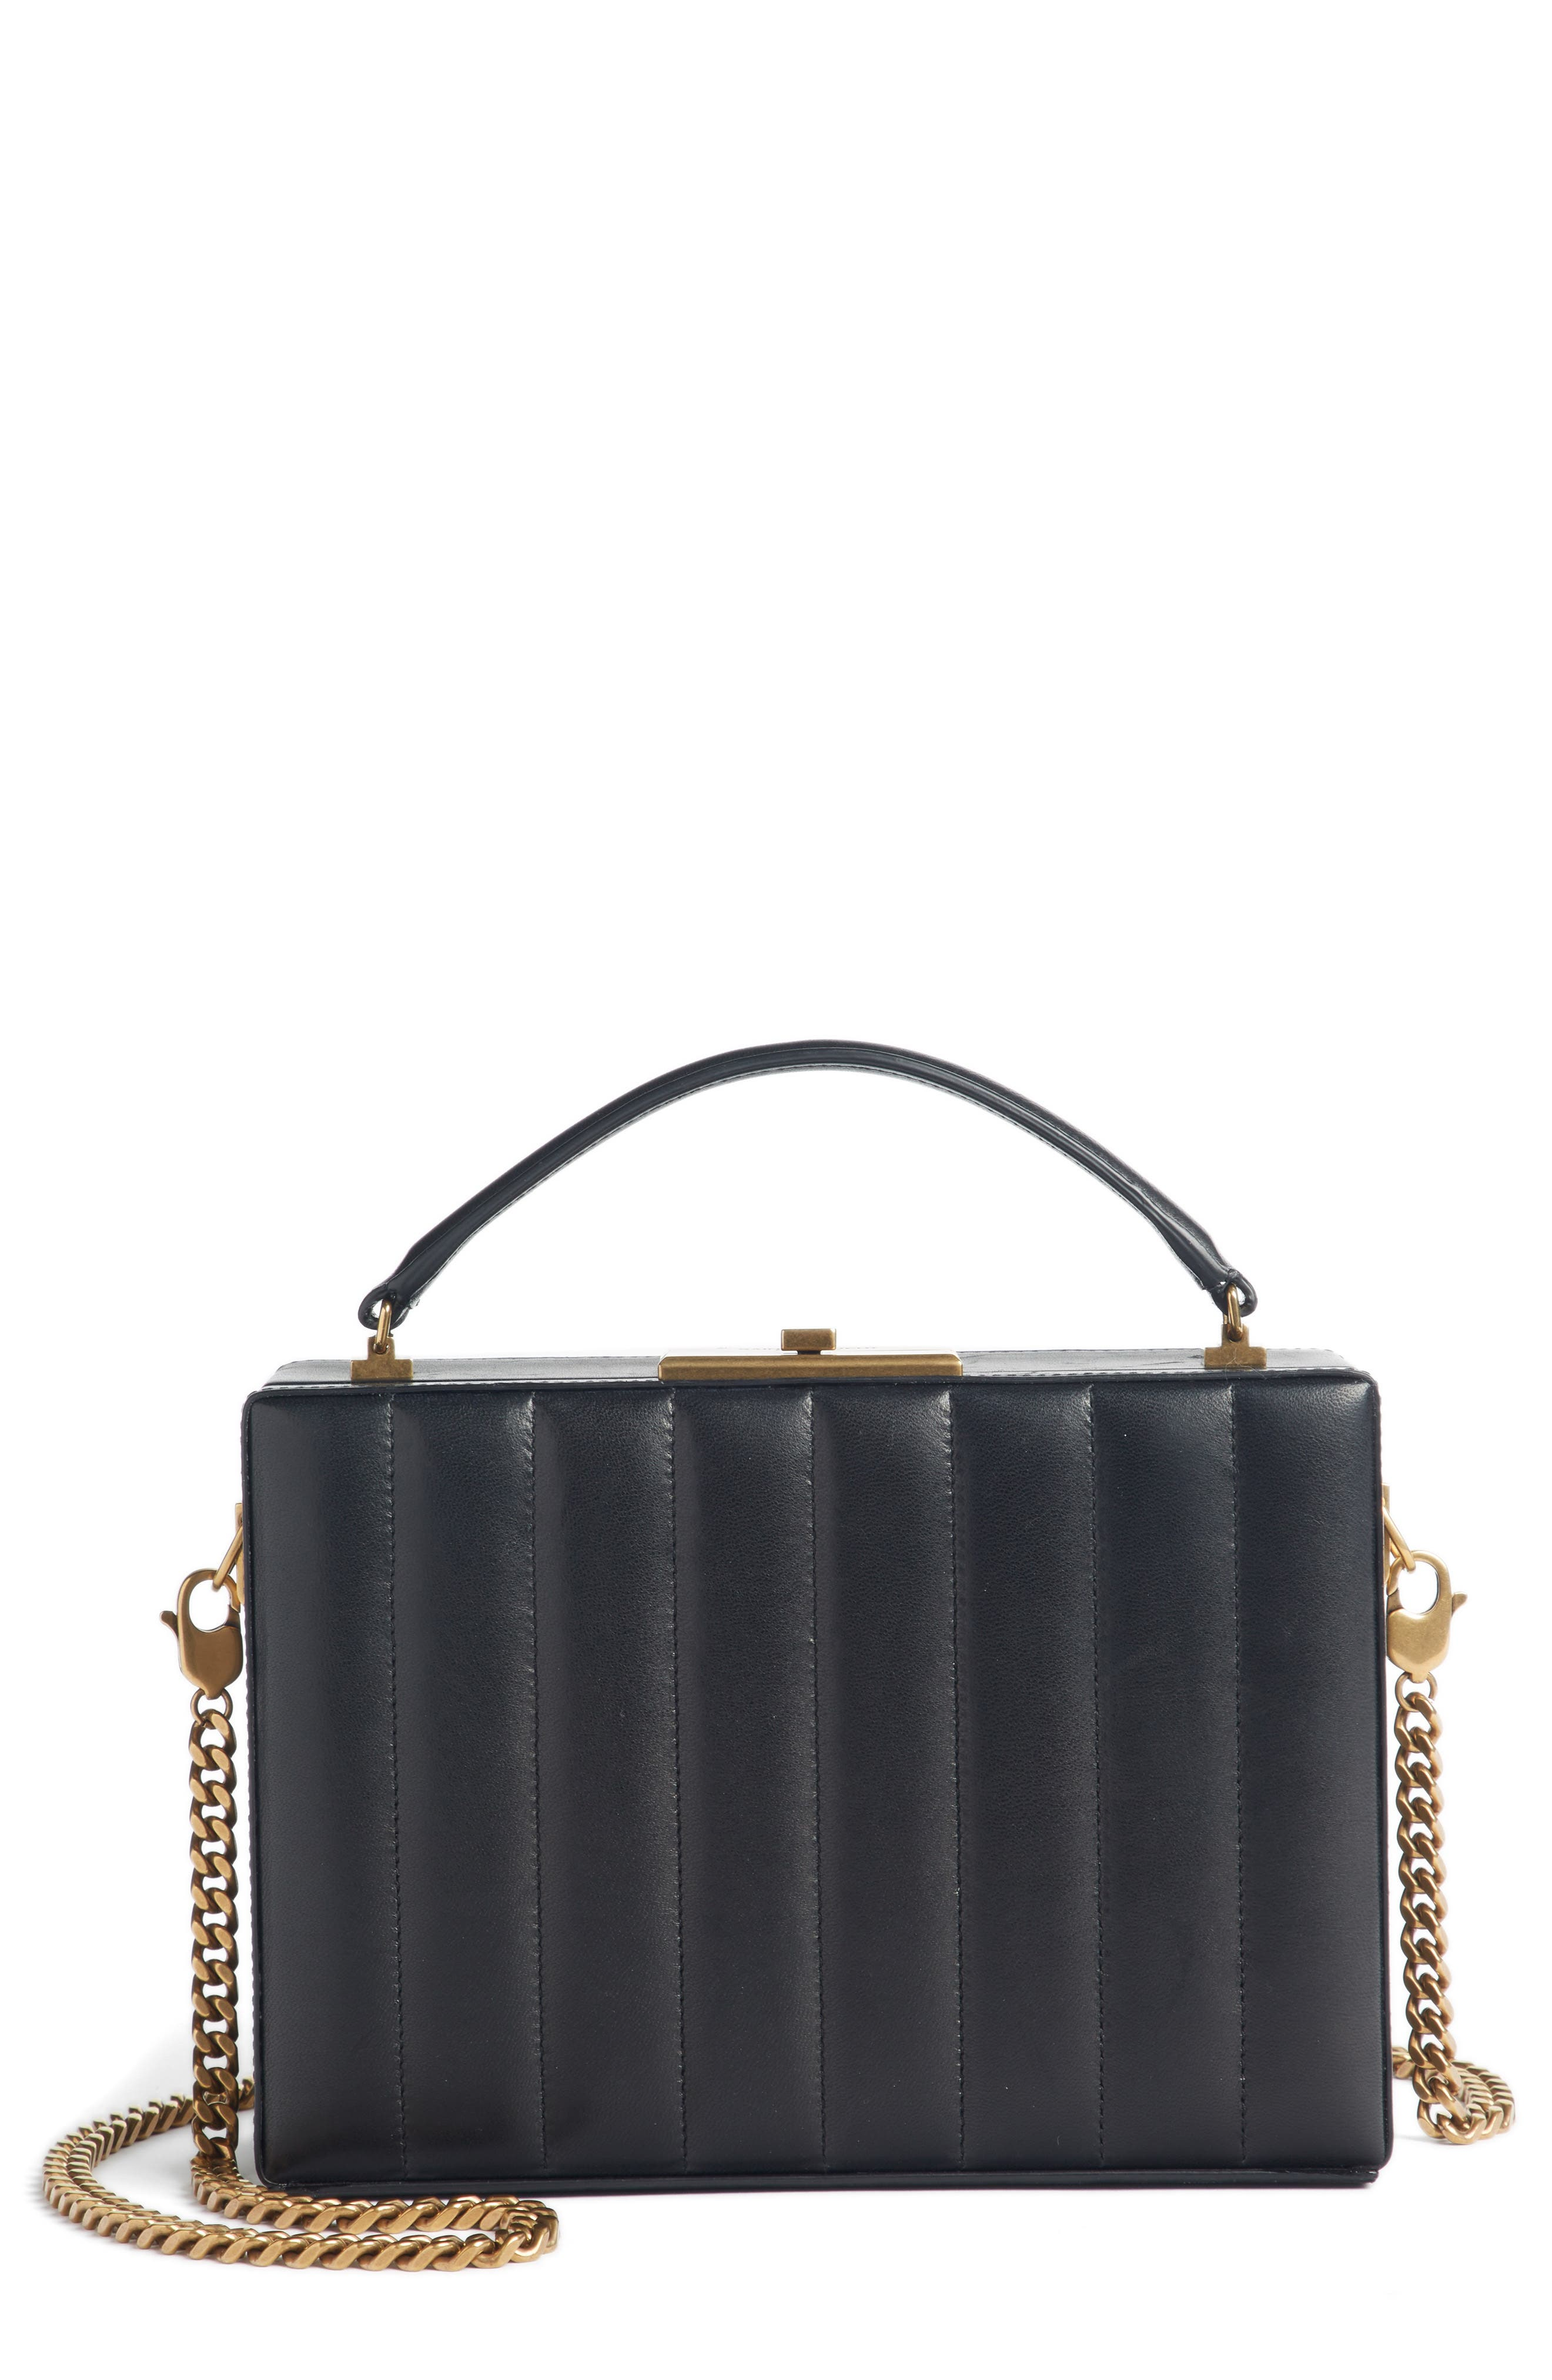 Nan Quilted Leather Frame Bag,                             Main thumbnail 1, color,                             NOIR